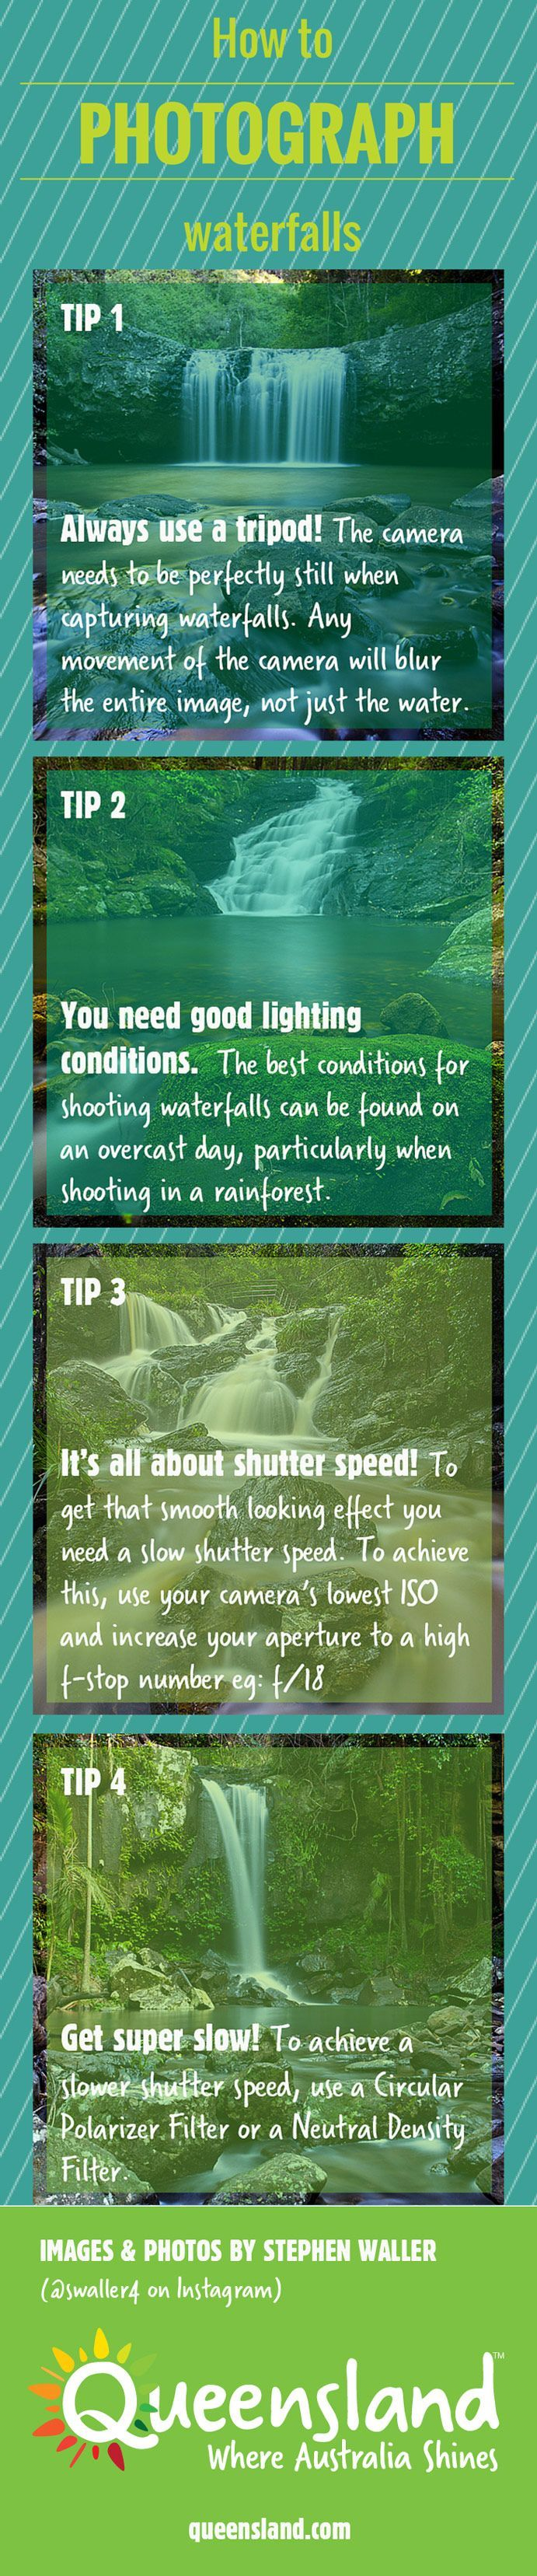 Photography Tips | How to photograph waterfalls INFOGRAPHIC  http://tipsrazzi.com/ppost/547187423463323133/